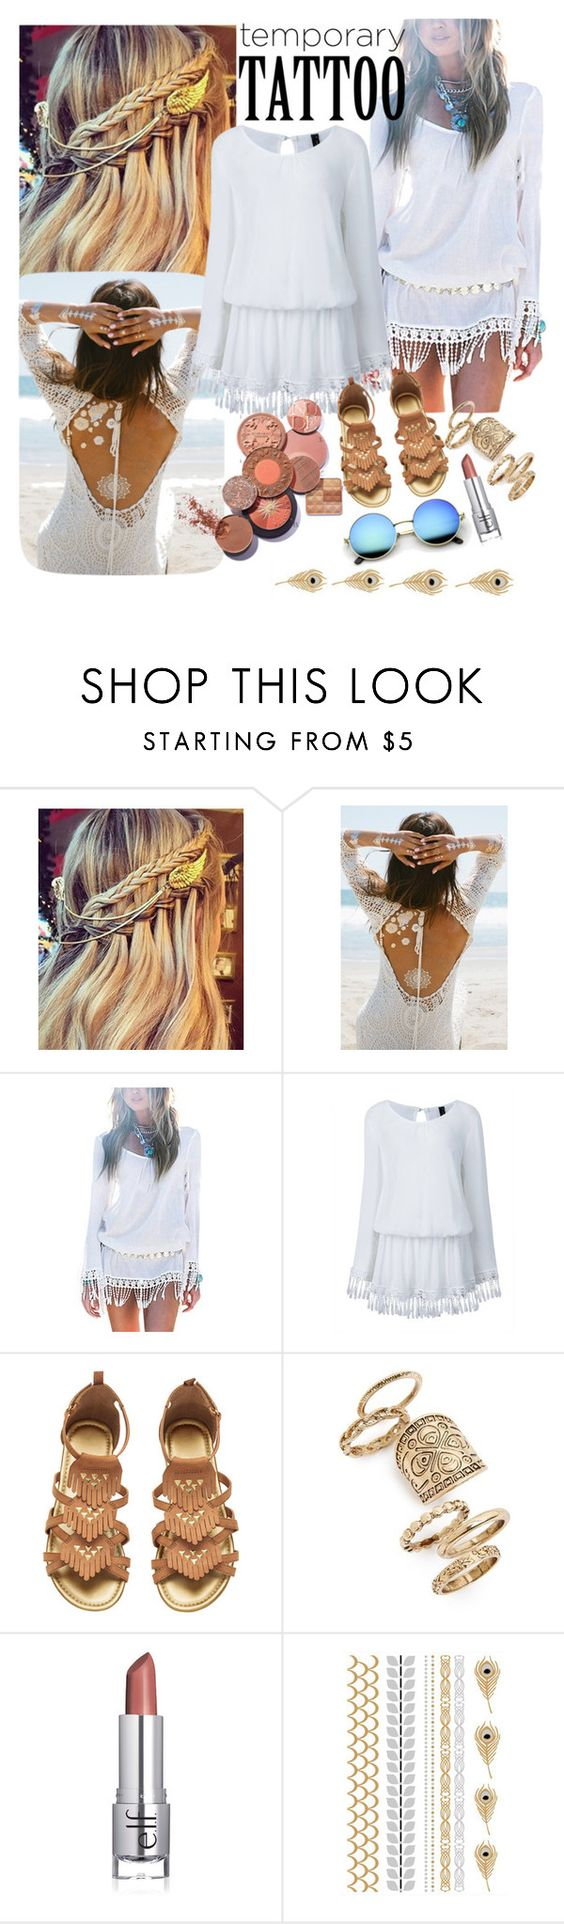 """""""Untitled #34"""" by dhitapuspitan ❤ liked on Polyvore featuring Lulu DK, Topshop and temporarytattoo"""